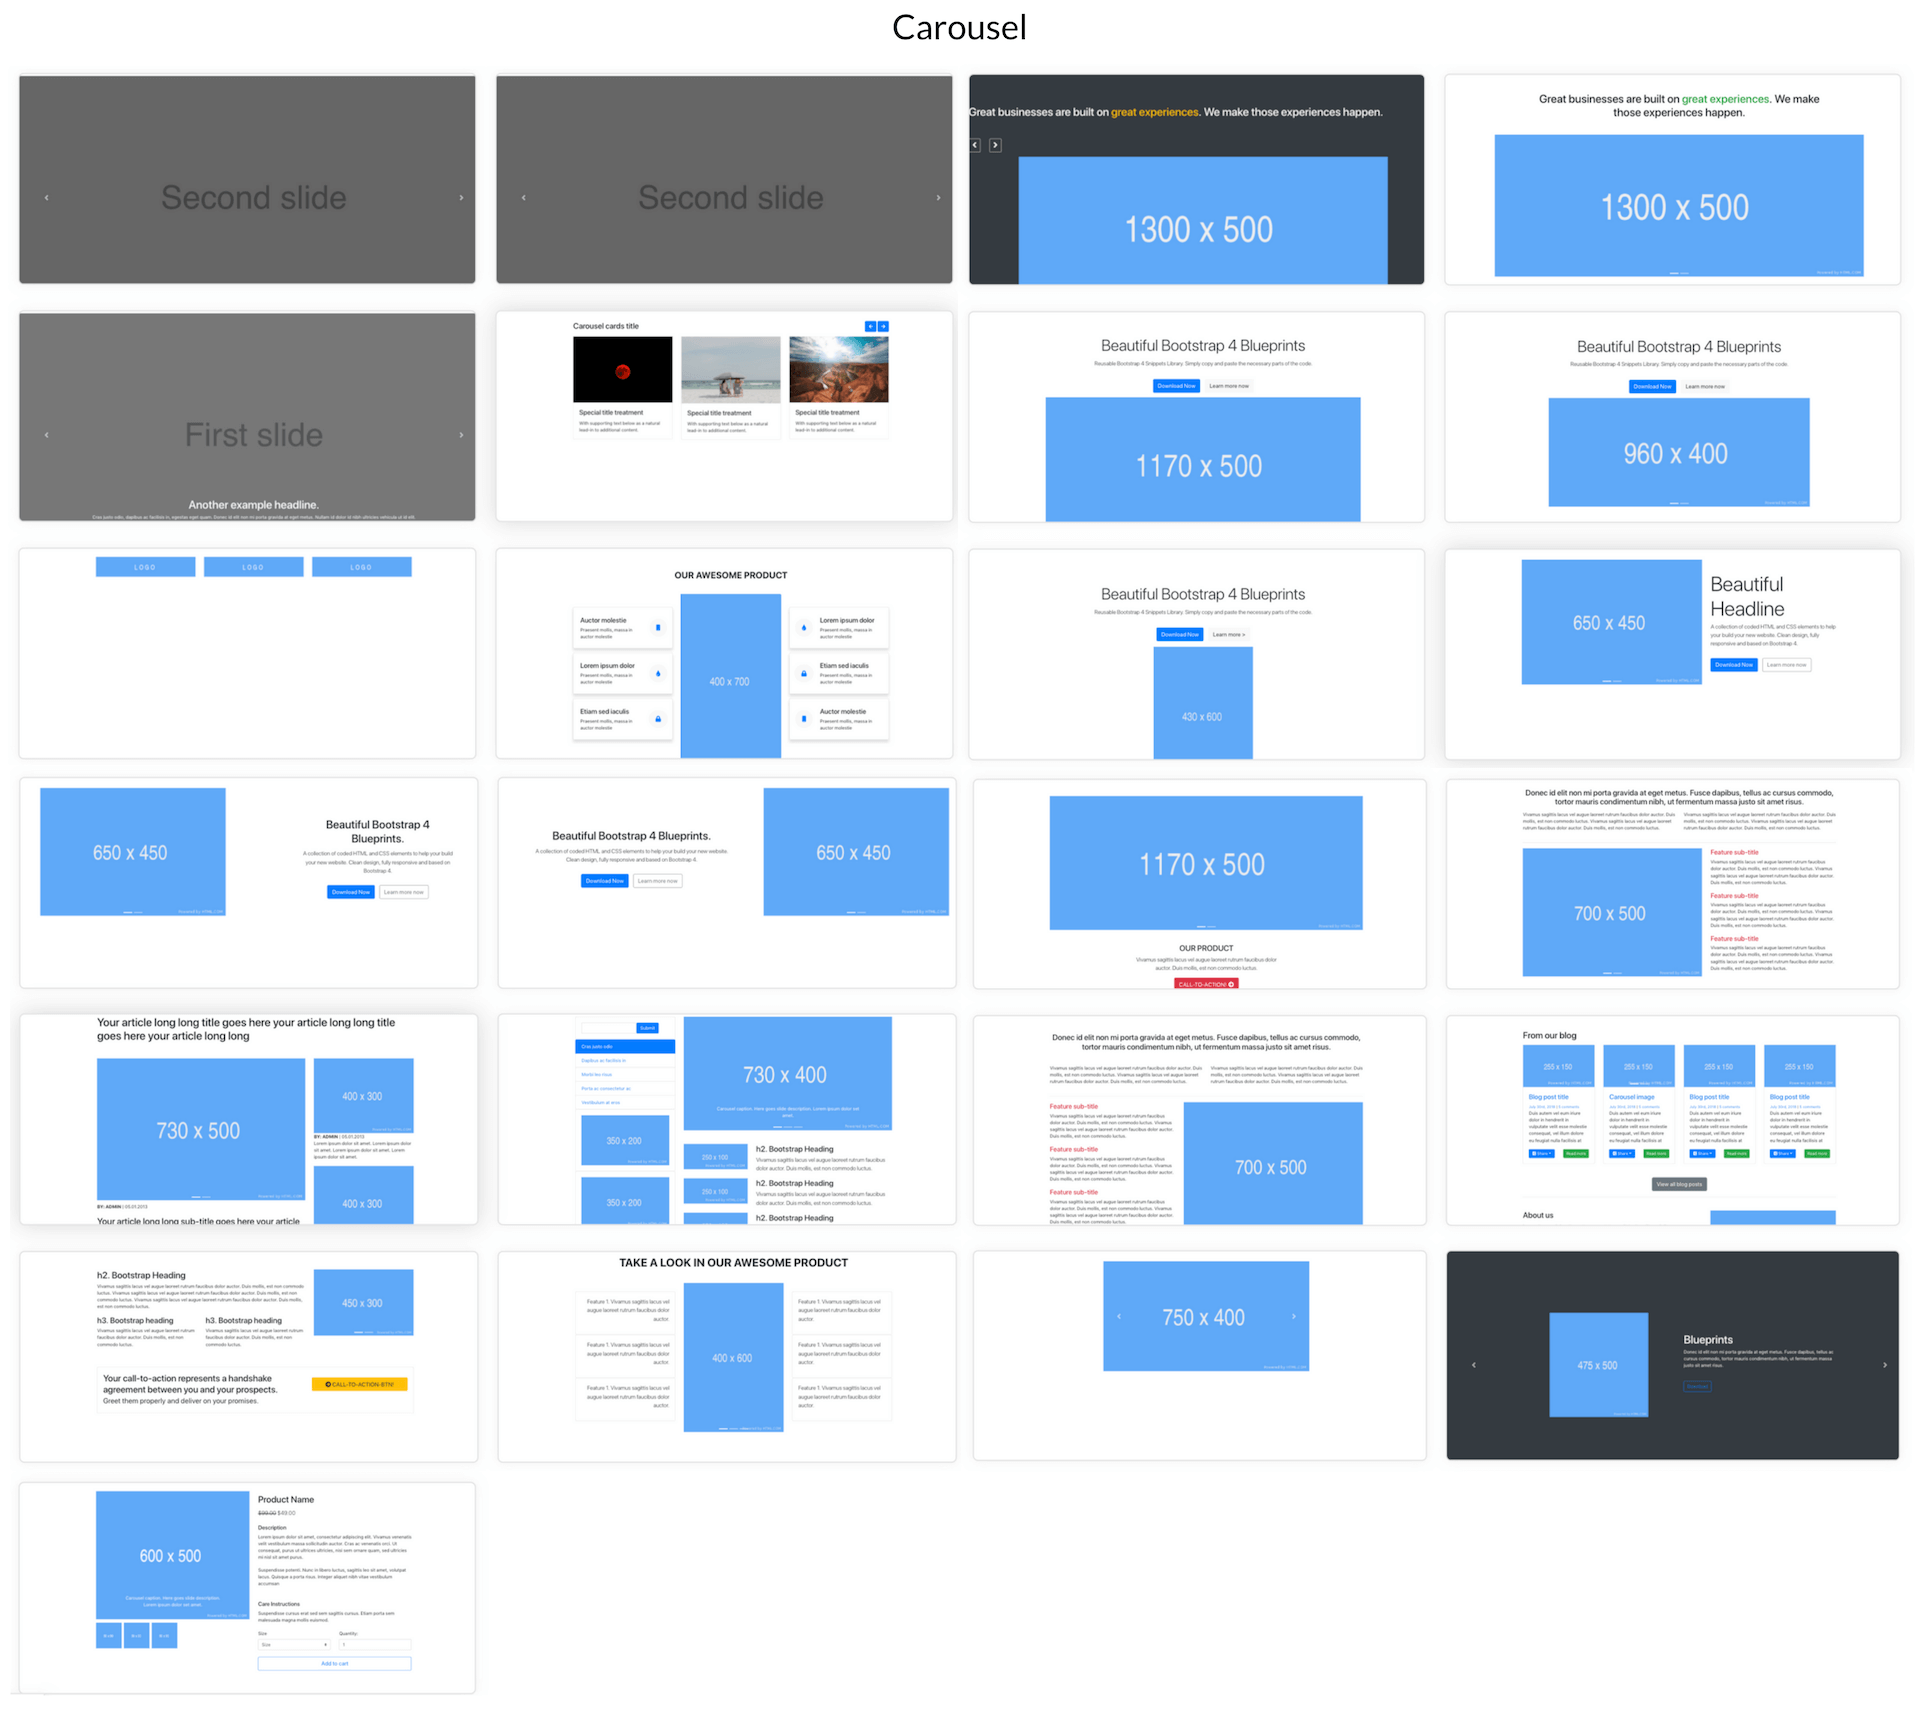 Elements Of Blueprints App, A Bootstrap Web Builder - Carousel